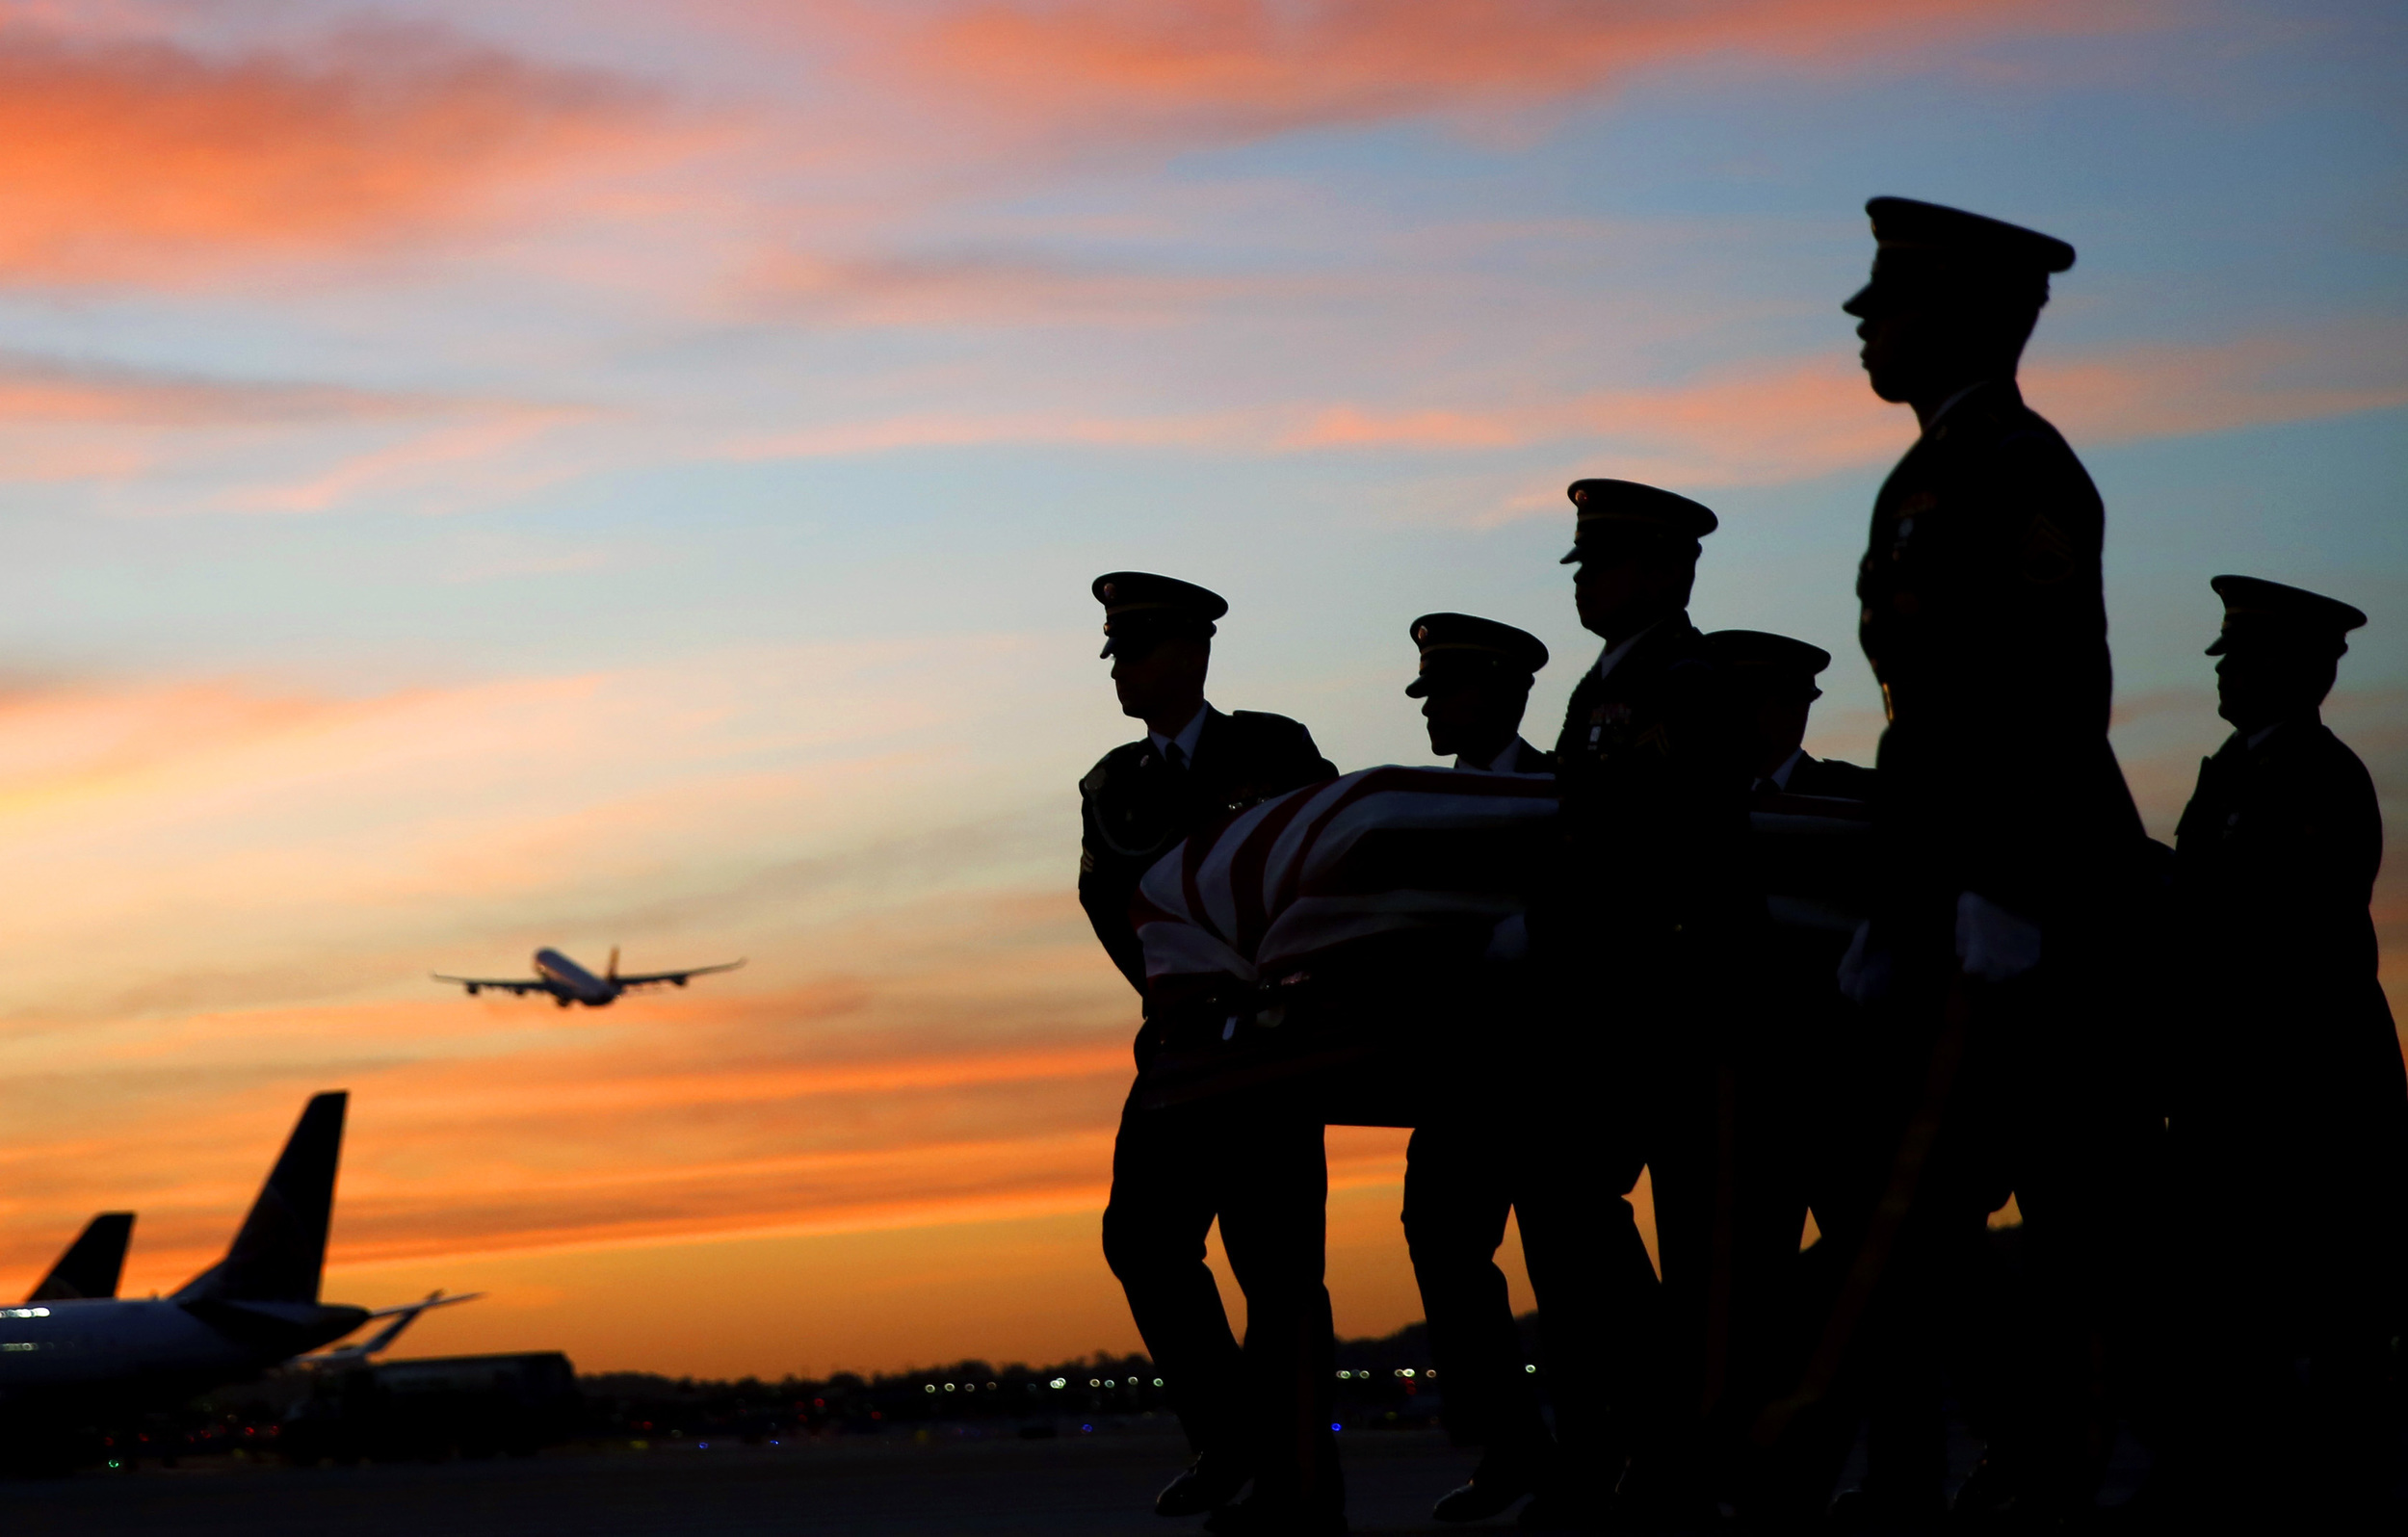 Six servicemen carry the remains of Army Cpl. Robert Graham from a plane at San Francisco International Airport on Wednesday, April 6, 2016.